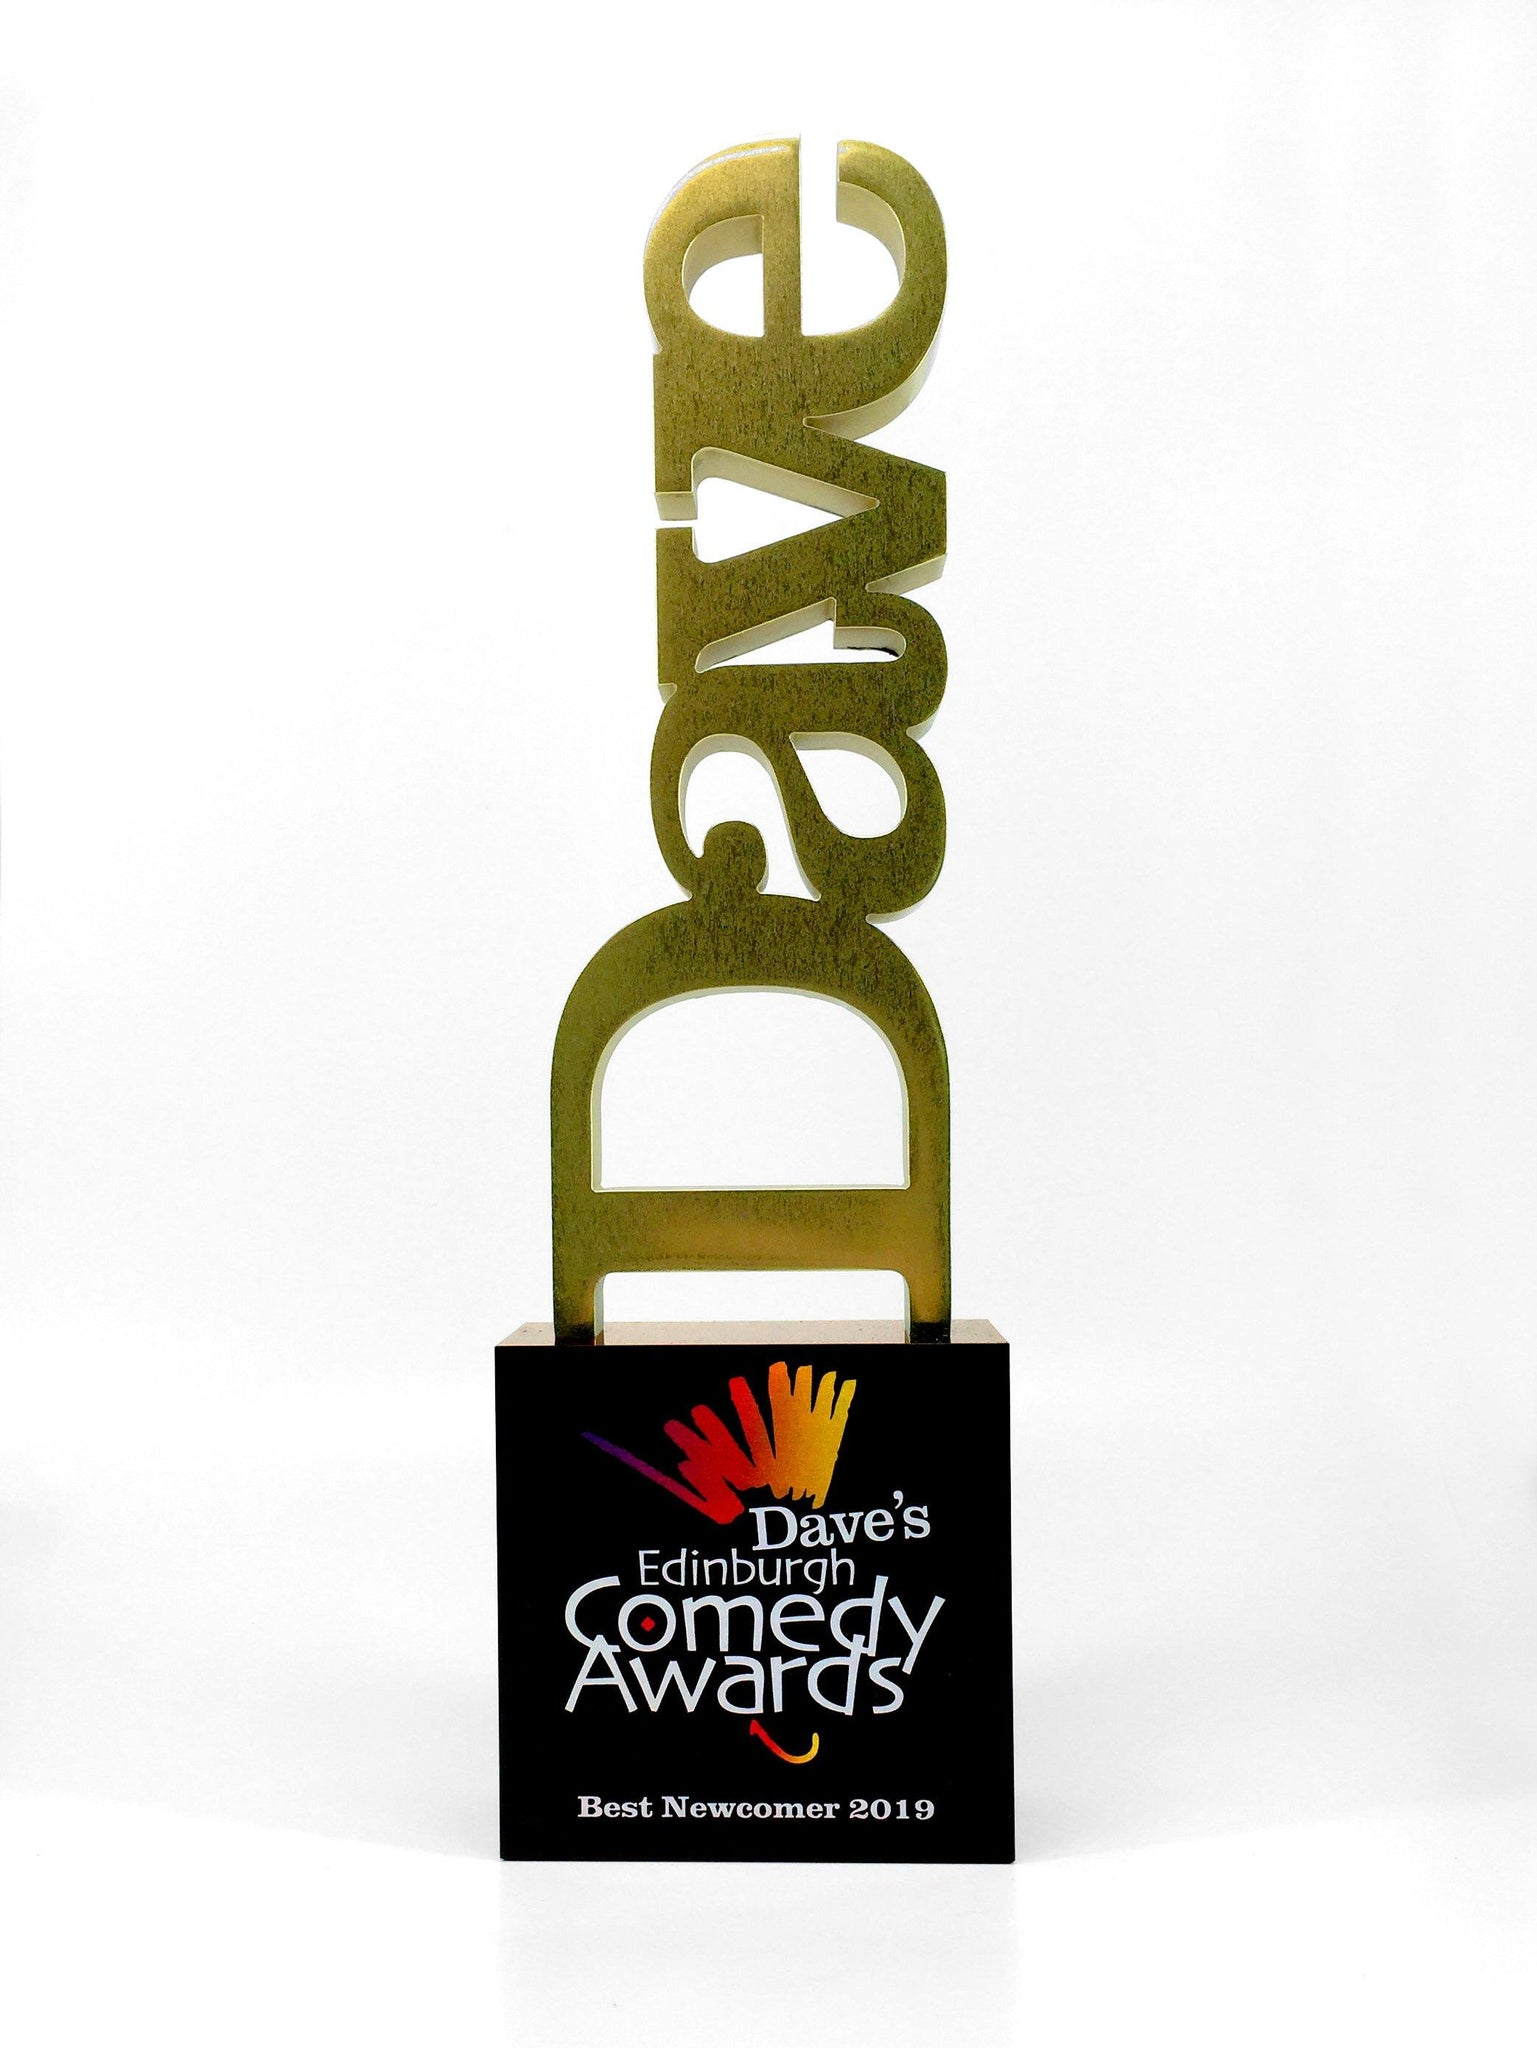 Edinburgh Fringe Comedy Awards Bespoke Mixed Media Awards Creative Awards